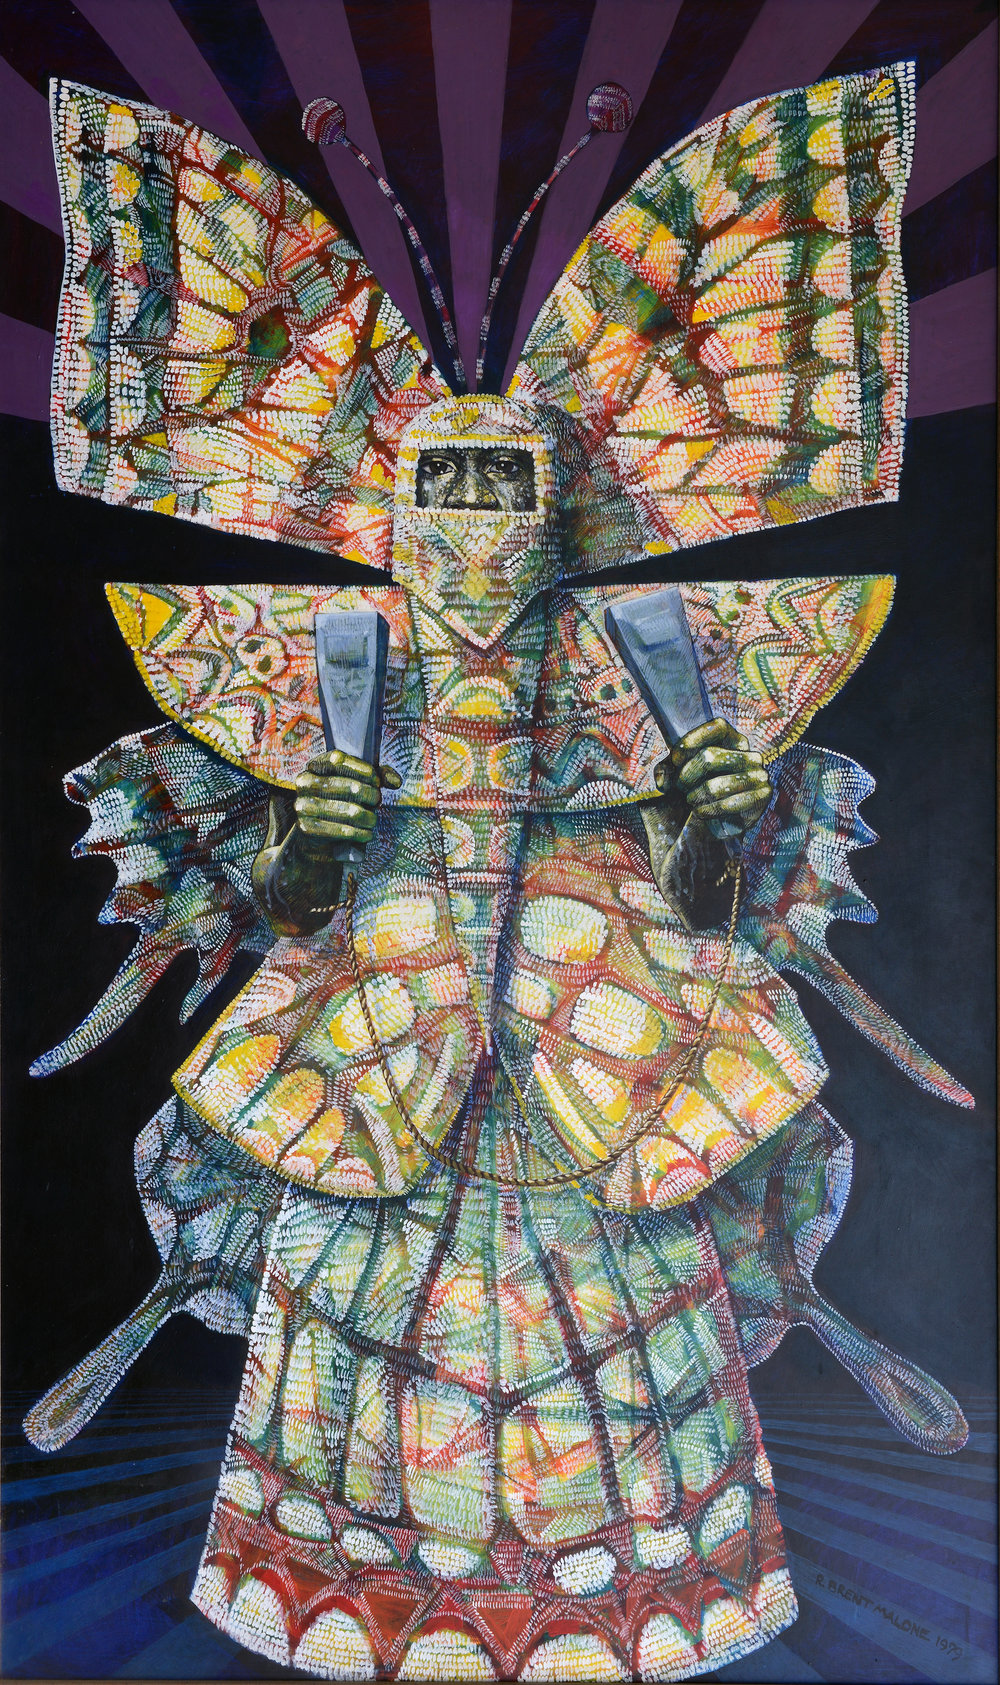 """Metamorphosis"" (1979), R Brent Malone, acrylic on hardboard, 60 x 36. Part of the National Collection, purchased using the Membership Fund 2005-2006, currently on display in the NAGB's Permanent Exhibition ""Revisiting An Eye For the Tropics""."